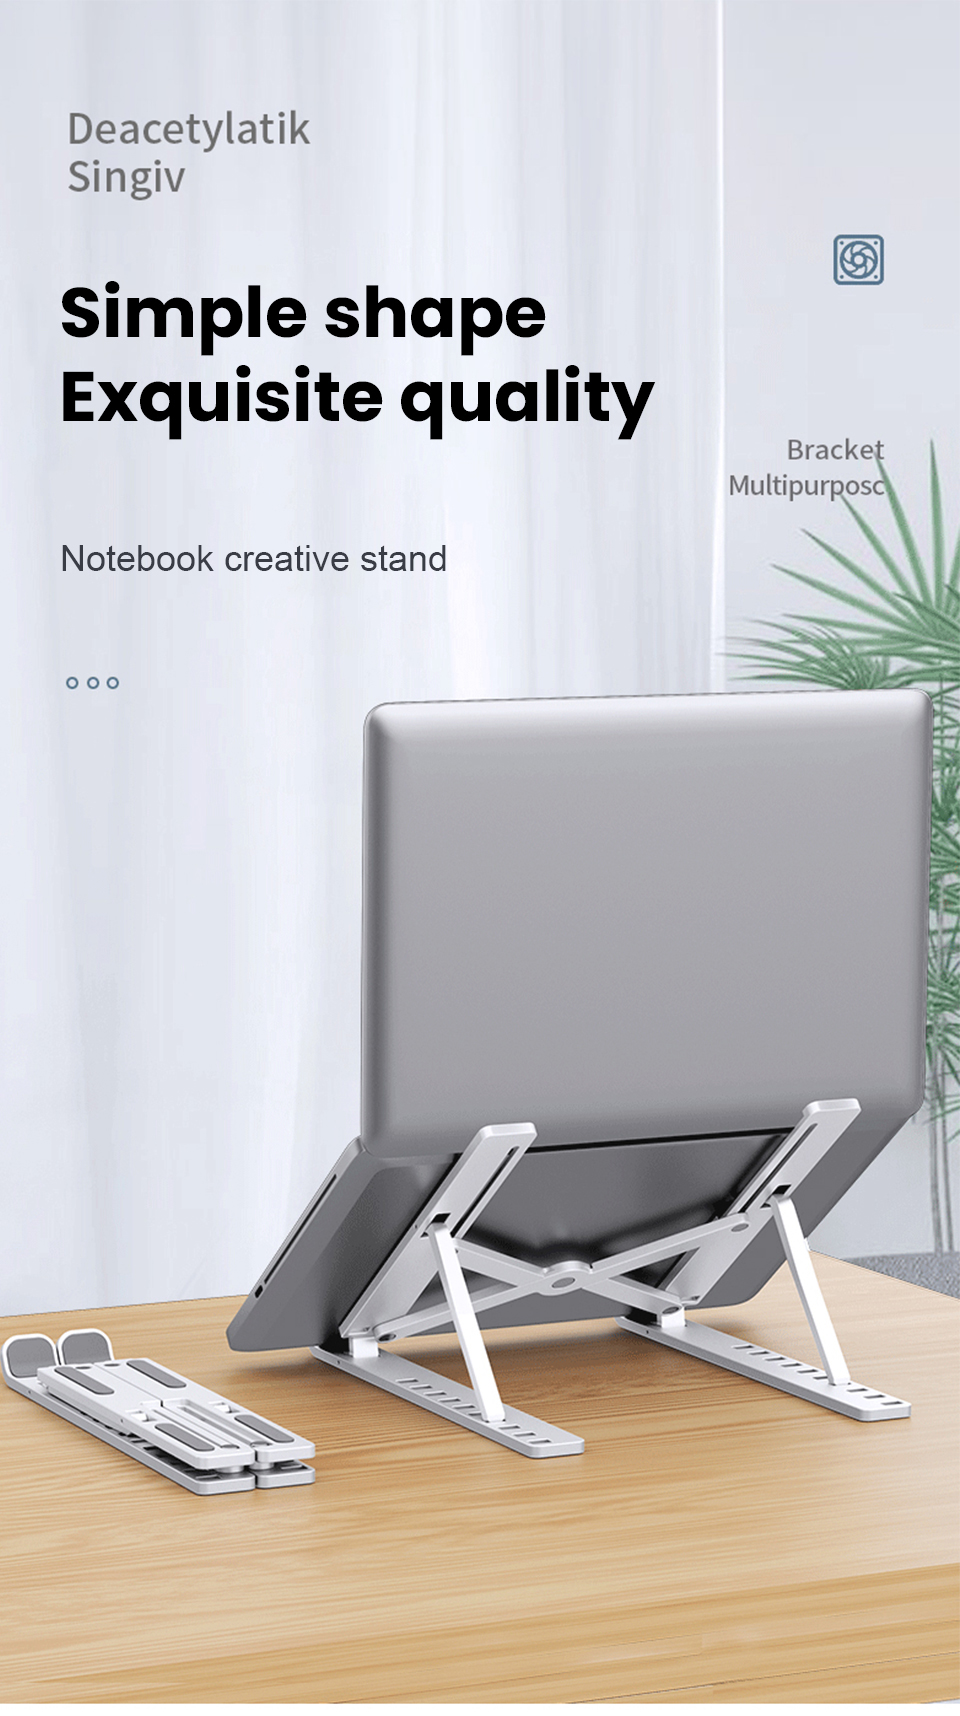 NEW Portable Laptop Stand 10 Levels Height Adjustable Stand For notebook Lapdesk Computer Laptop Holder Cooling Bracket Riser